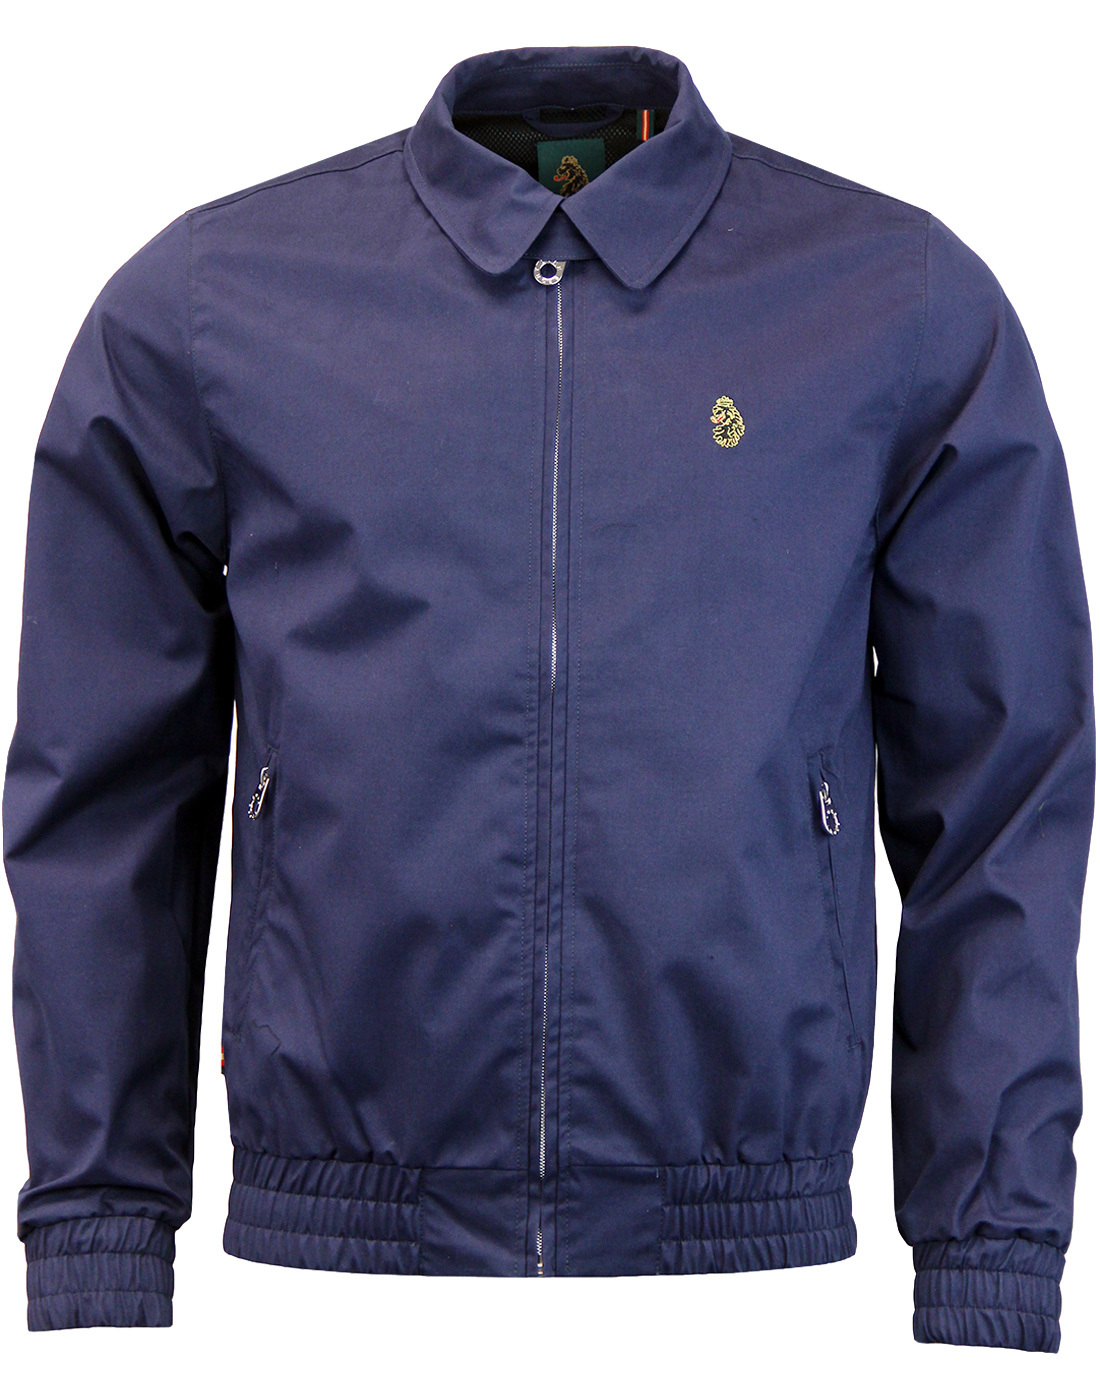 Brownhills Mafia LUKE 1977 Mod Harrington Jacket